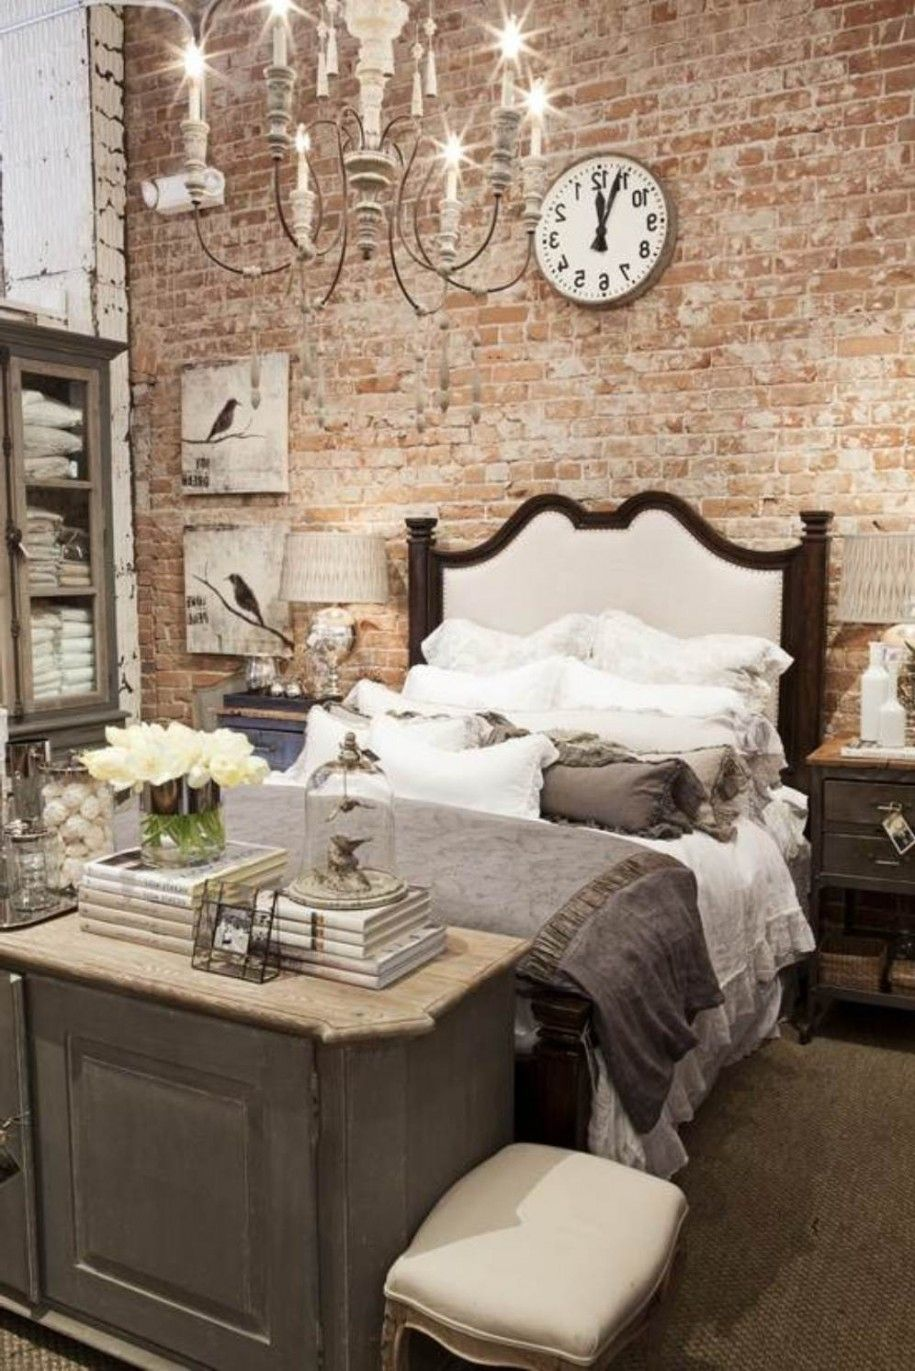 Rustic Design Ideas rustic garden decor ideas photograph rustic decorating ideas 25 Amazing Bedrooms With Brick Walls